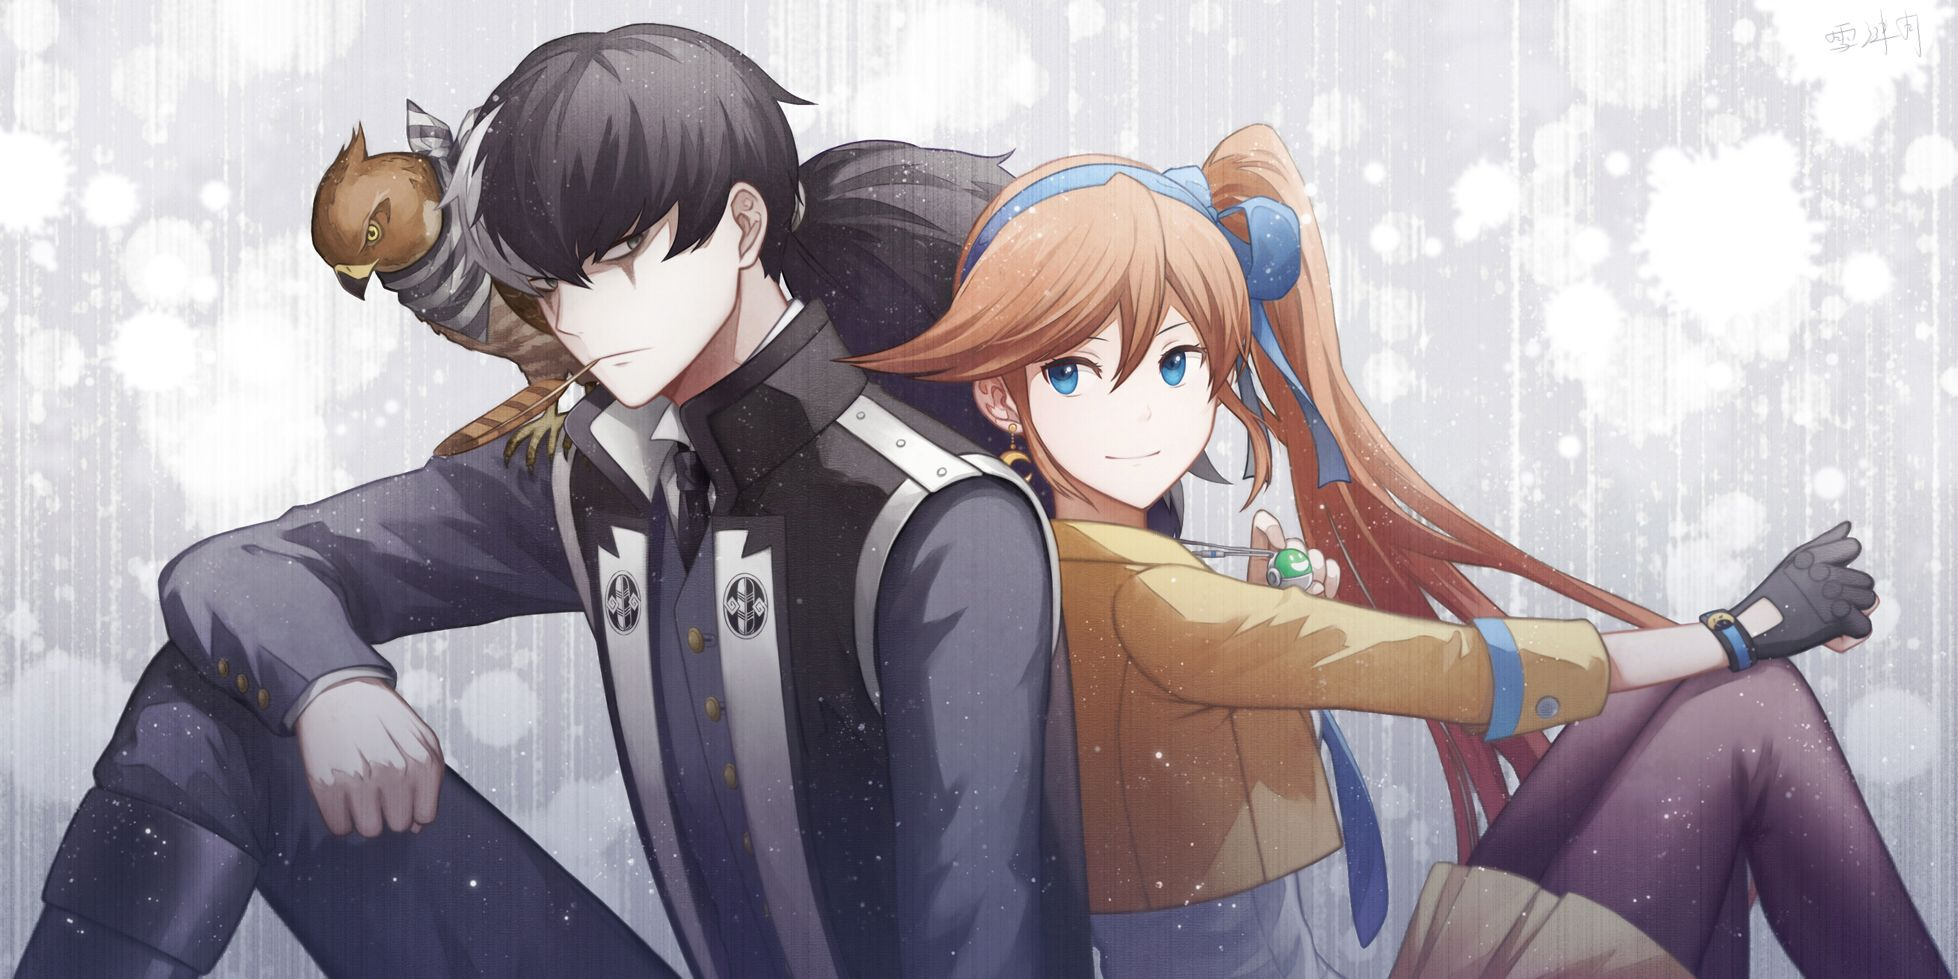 Ace Attorney Simon Blackquill And Athena Cykes By Xue Lian Yue